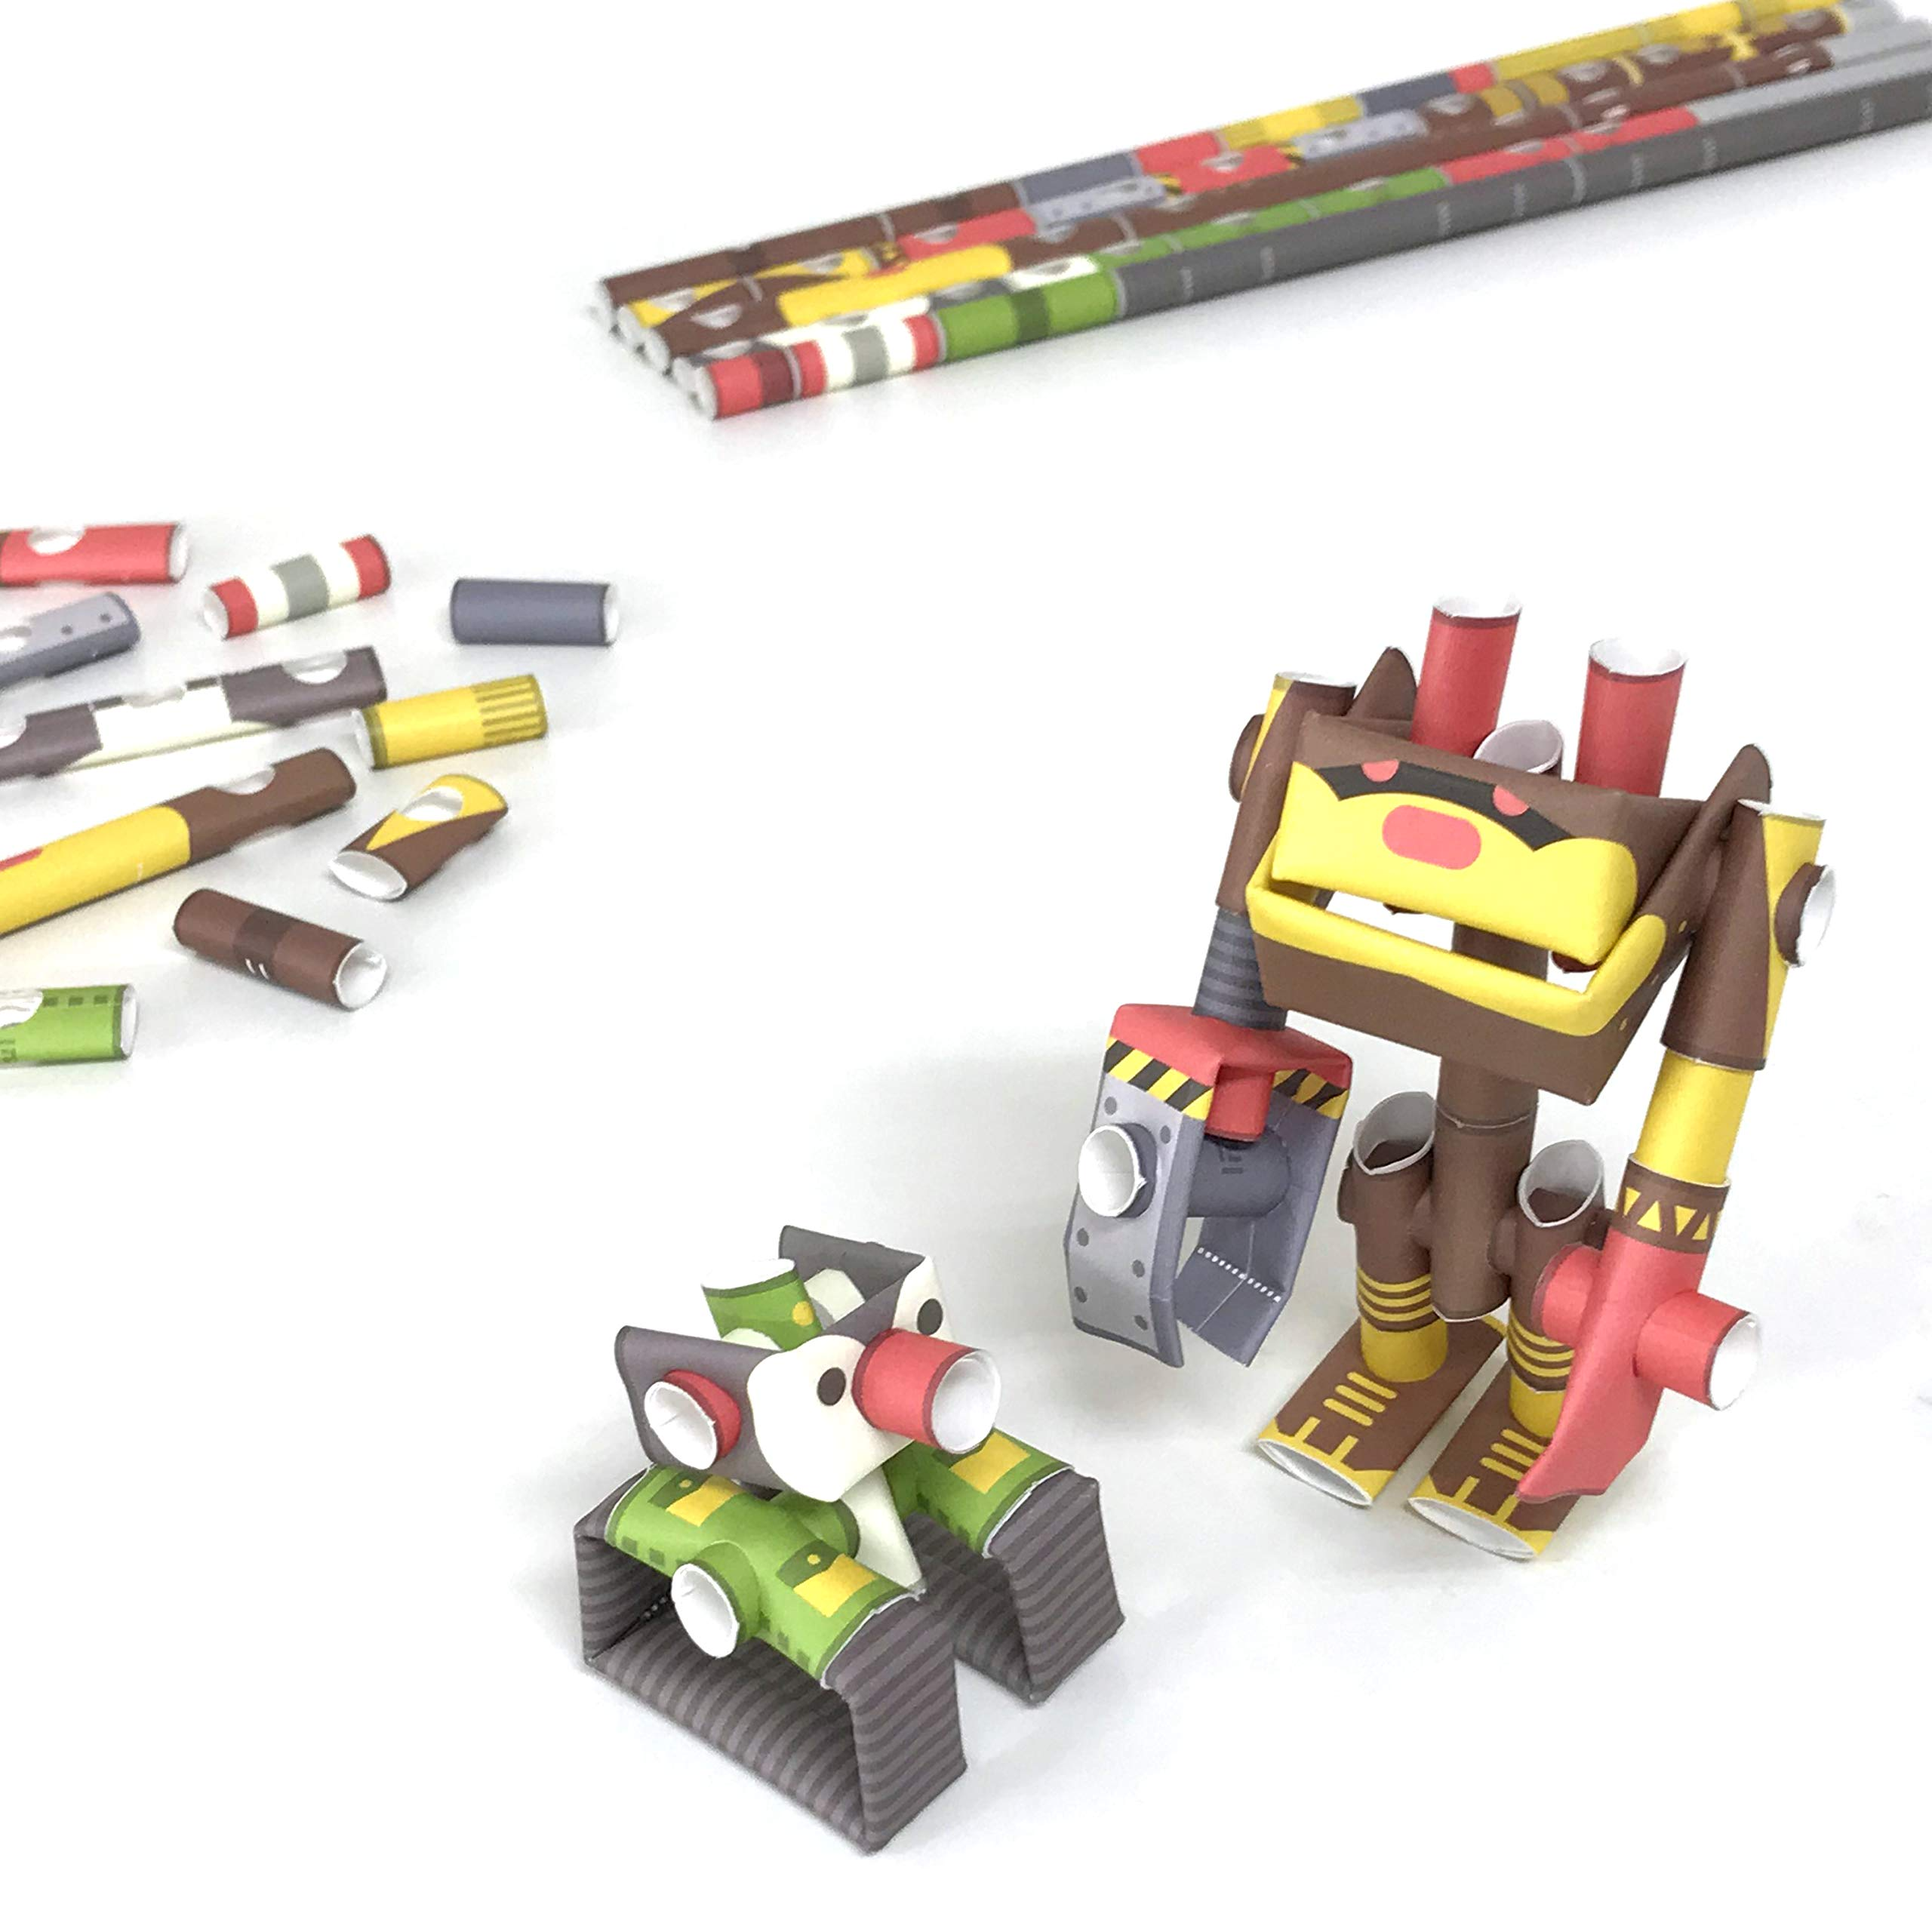 PIPEROID DIY Paper Craft Kit Penk & Bearborg Professor & Robot Bear - Japanese Arts and Craft Kit for Kids and Adults - Birthday Gift and Party Favor for 3D Puzzle and Origami Paper Craft Enthusiasts